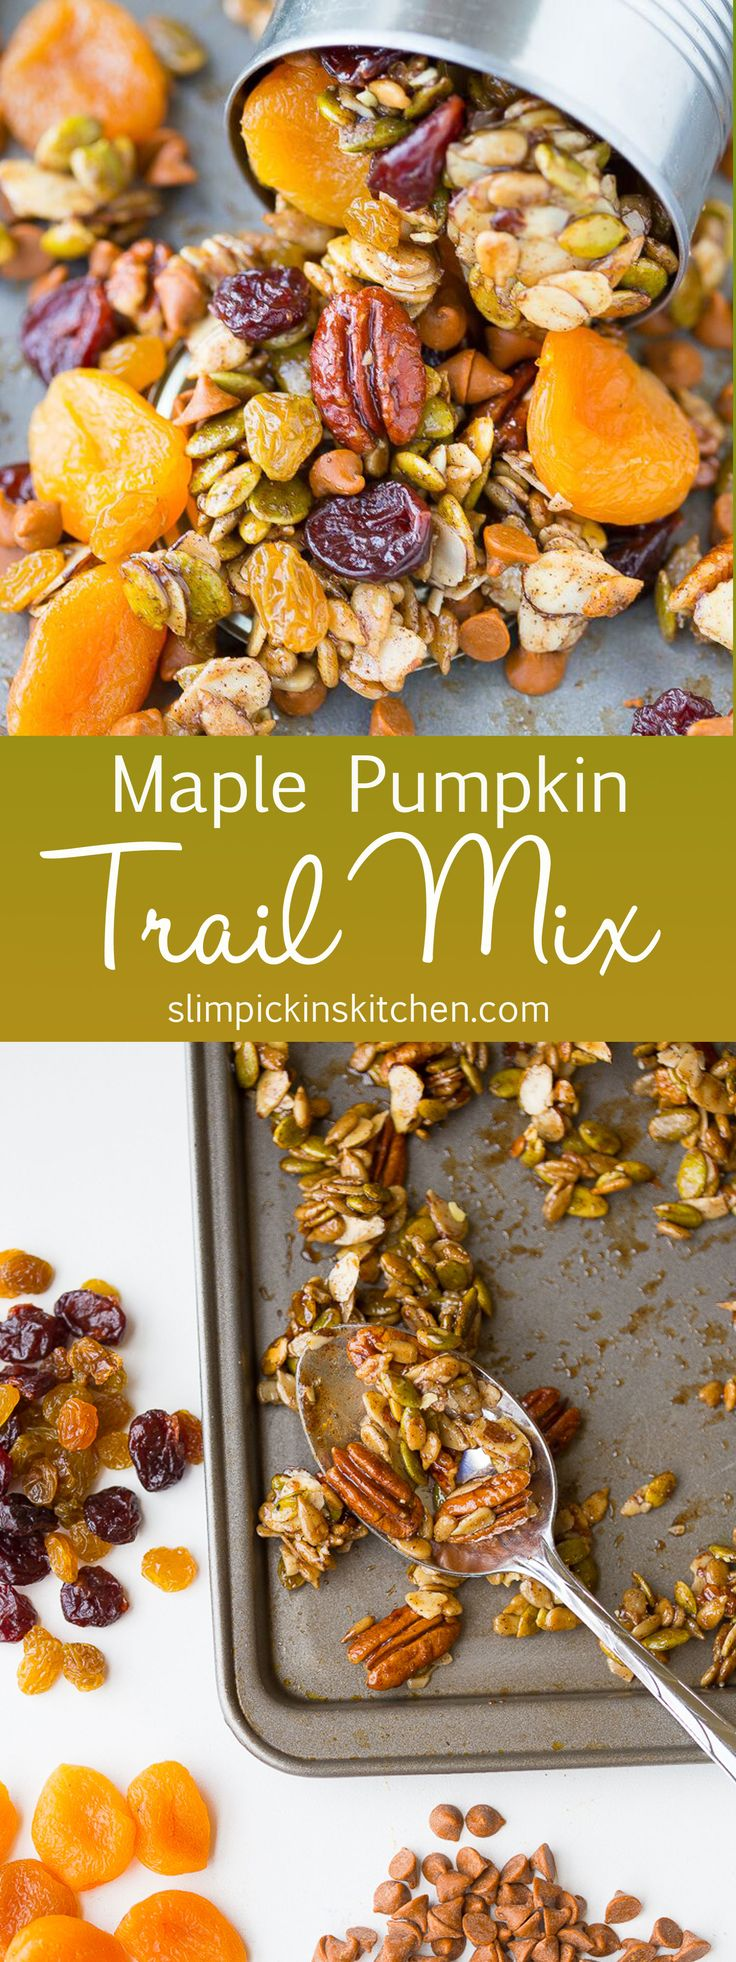 Maple Pumpkin Fall Harvest Trail Mix